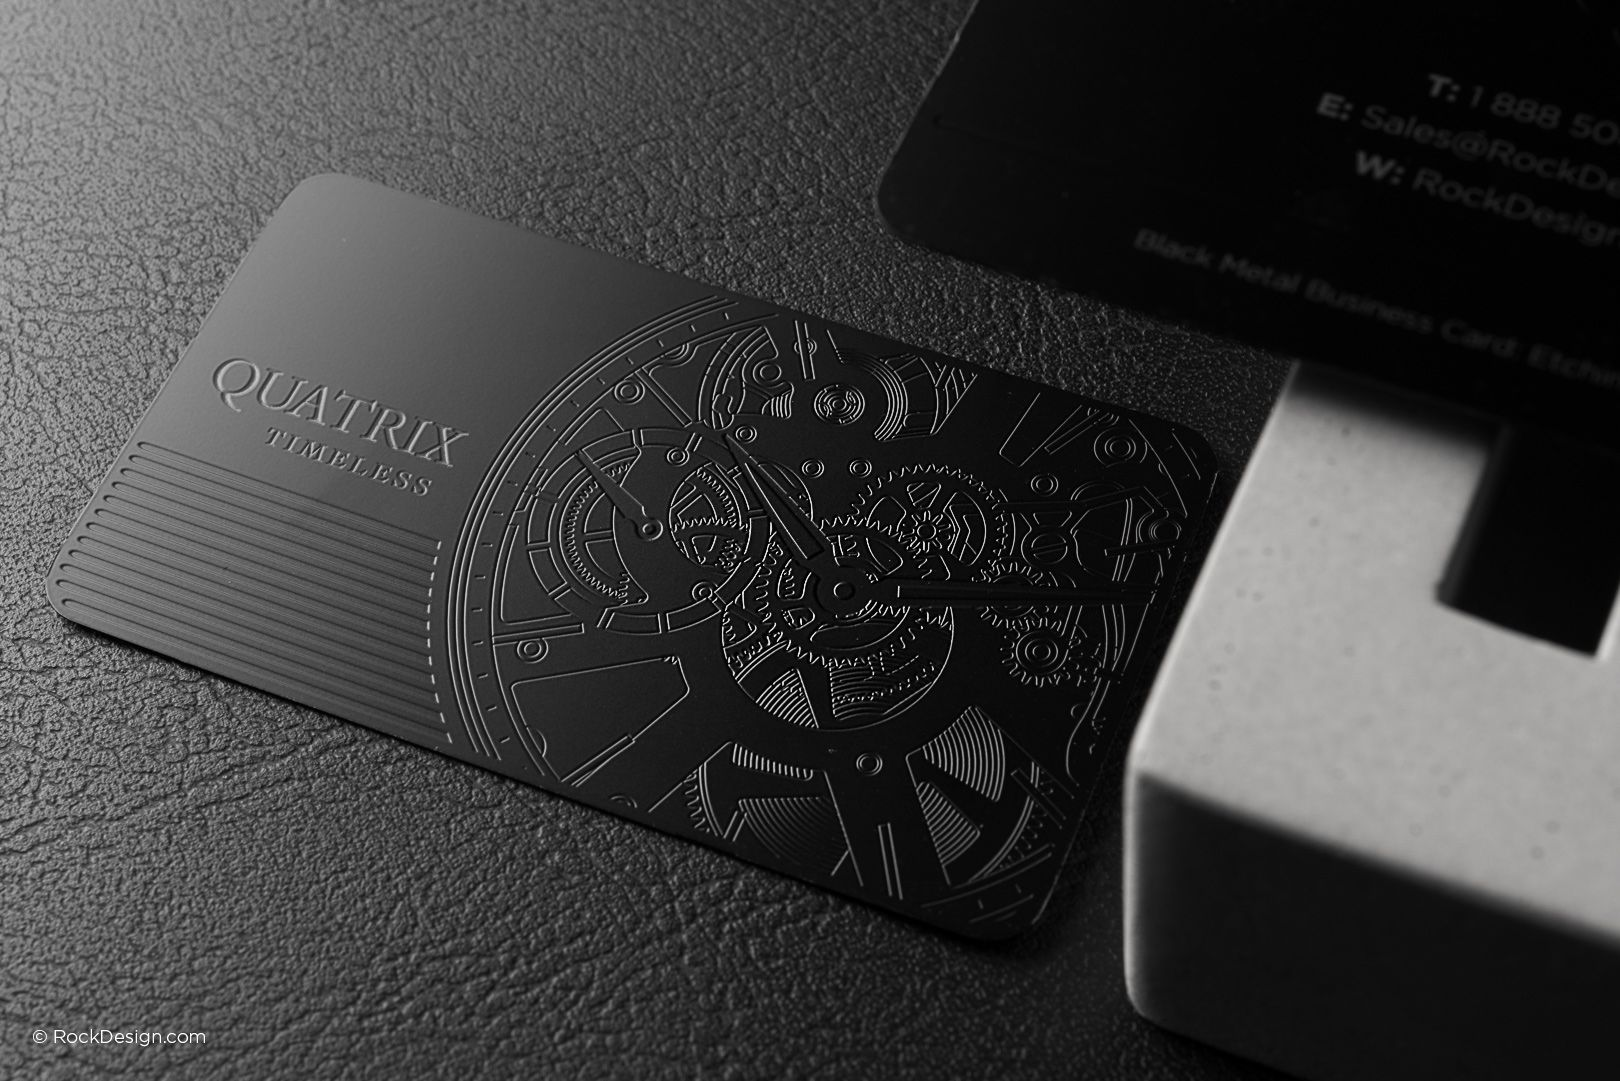 Gray business cards rockdesign luxury business card printing gray business cards rockdesign luxury business card printing art and other ideas pinterest luxury business cards card printing and business cards reheart Image collections